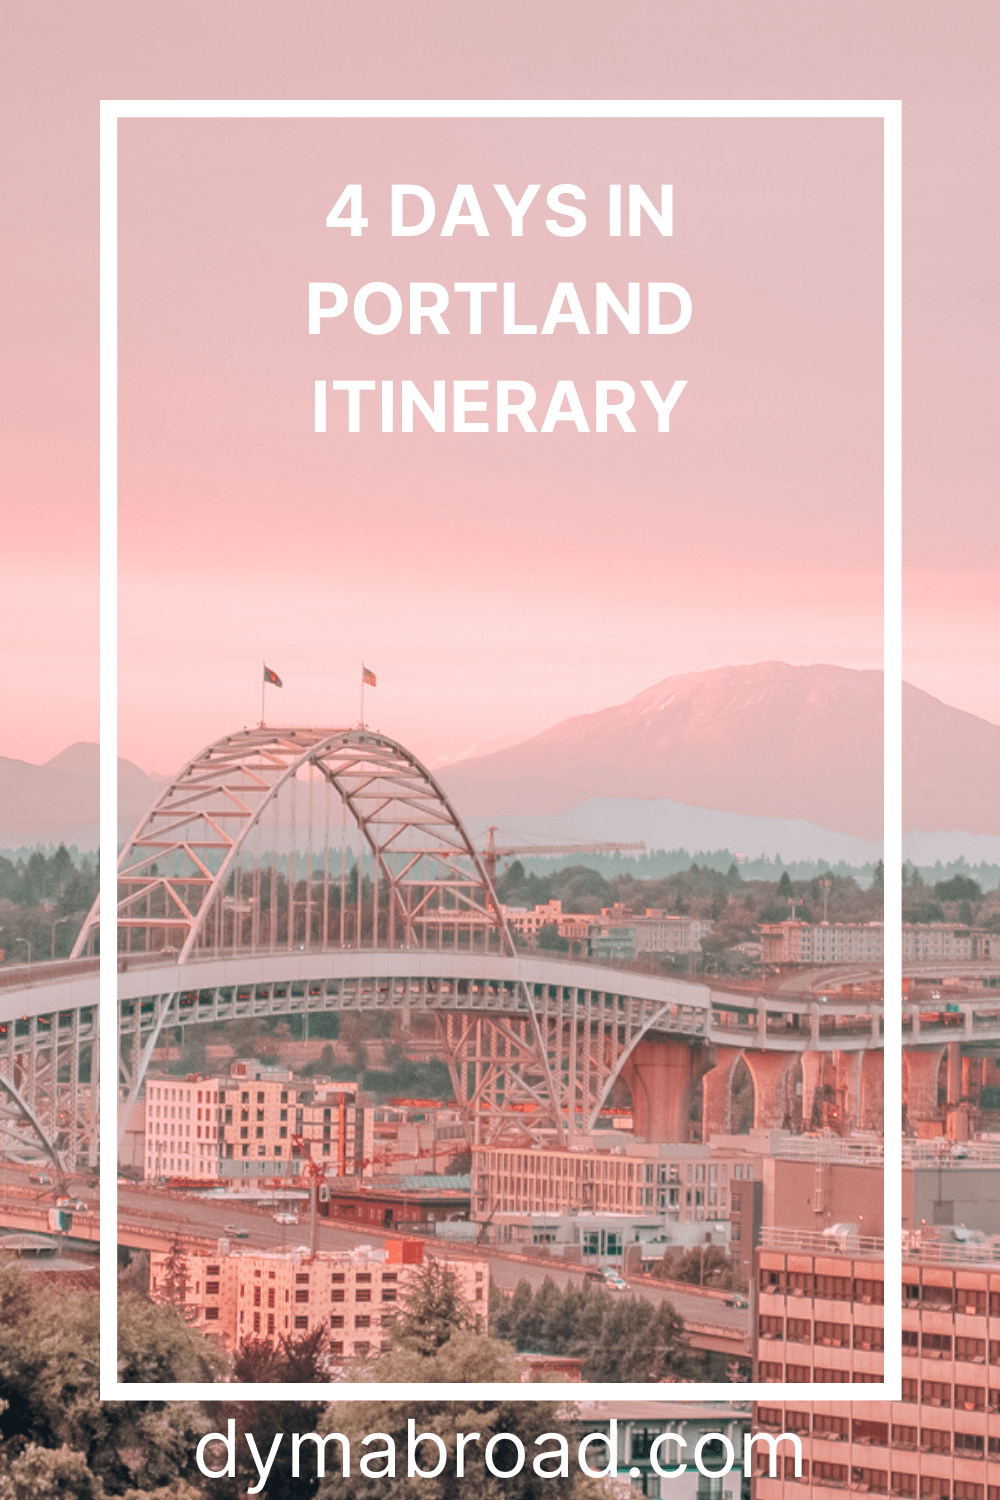 4 days in Portland second Pinterest image